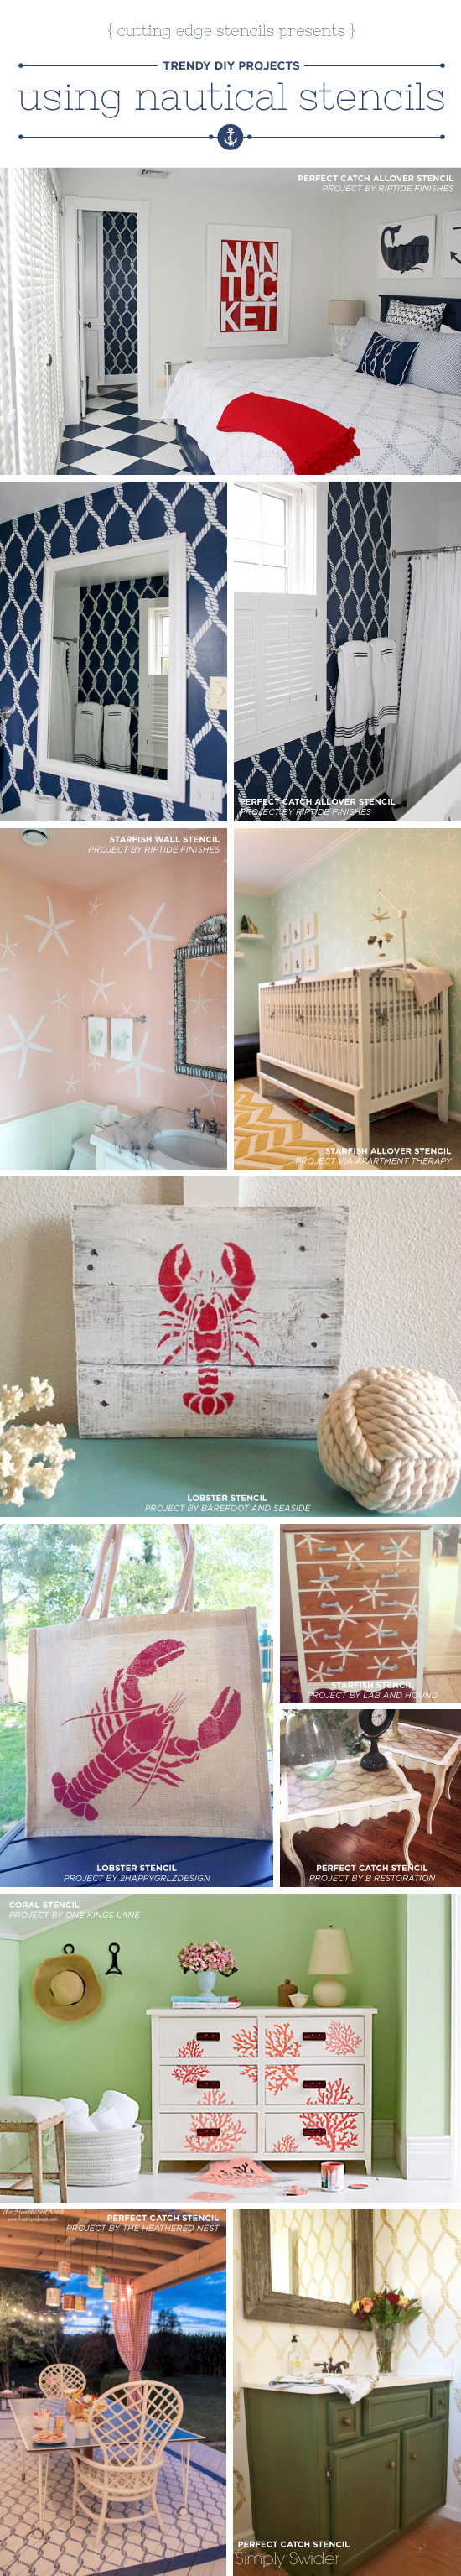 Trendy DIY Projects Using Nautical Stencils Cutting Edge Stencils shares DIY Nautical home decor projects using Beach  Inspired Stencils  http